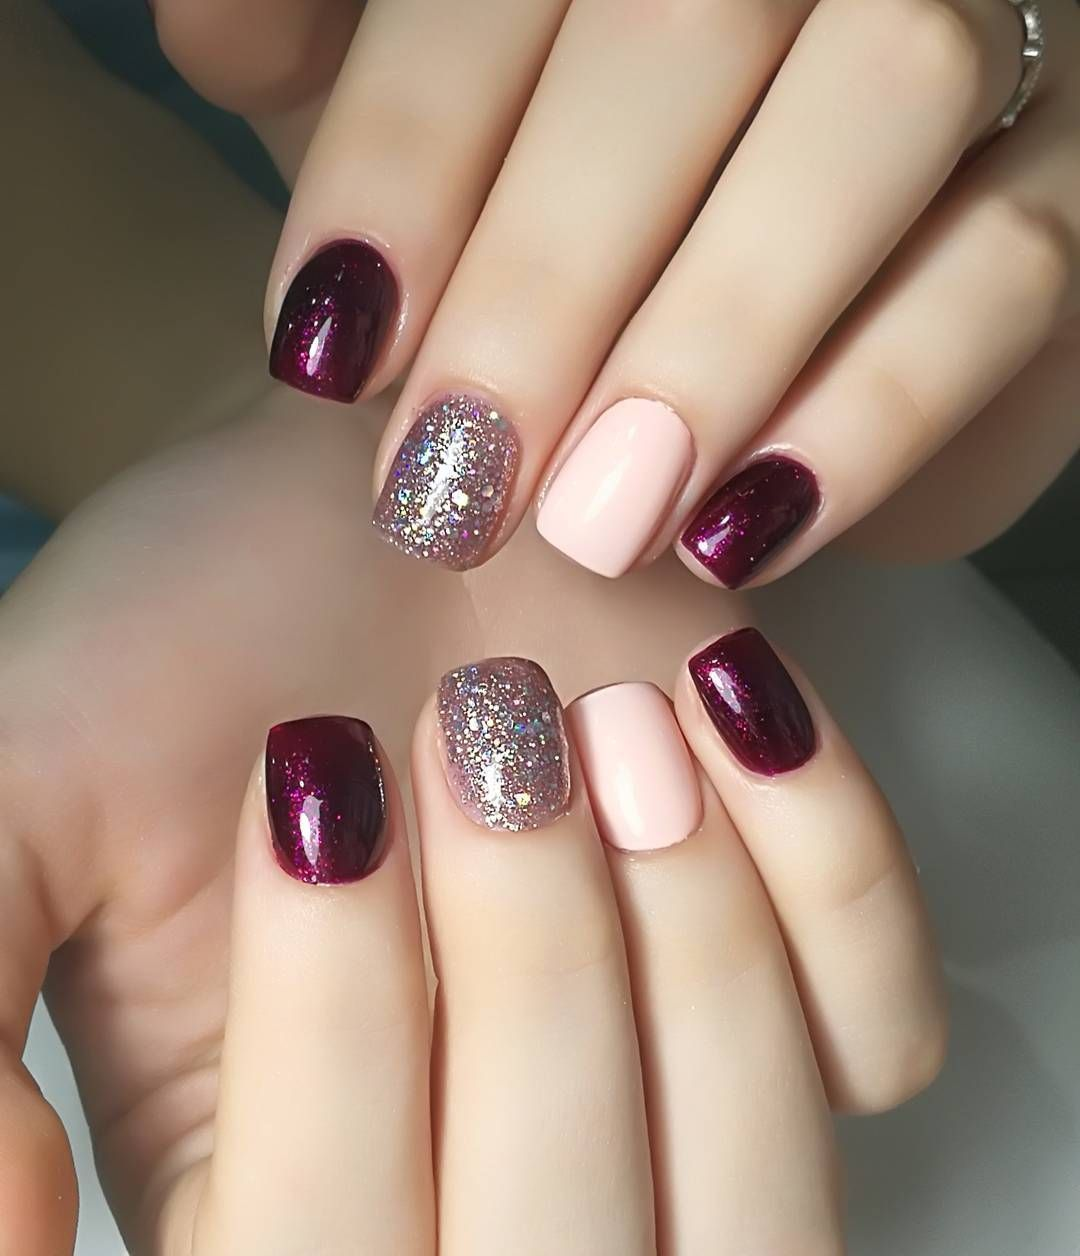 15 Trending Nail Designs That You Will Love! - Best Nail Art - 15 Trending Nail Designs That You Will Love! - Best Nail Art Uñas